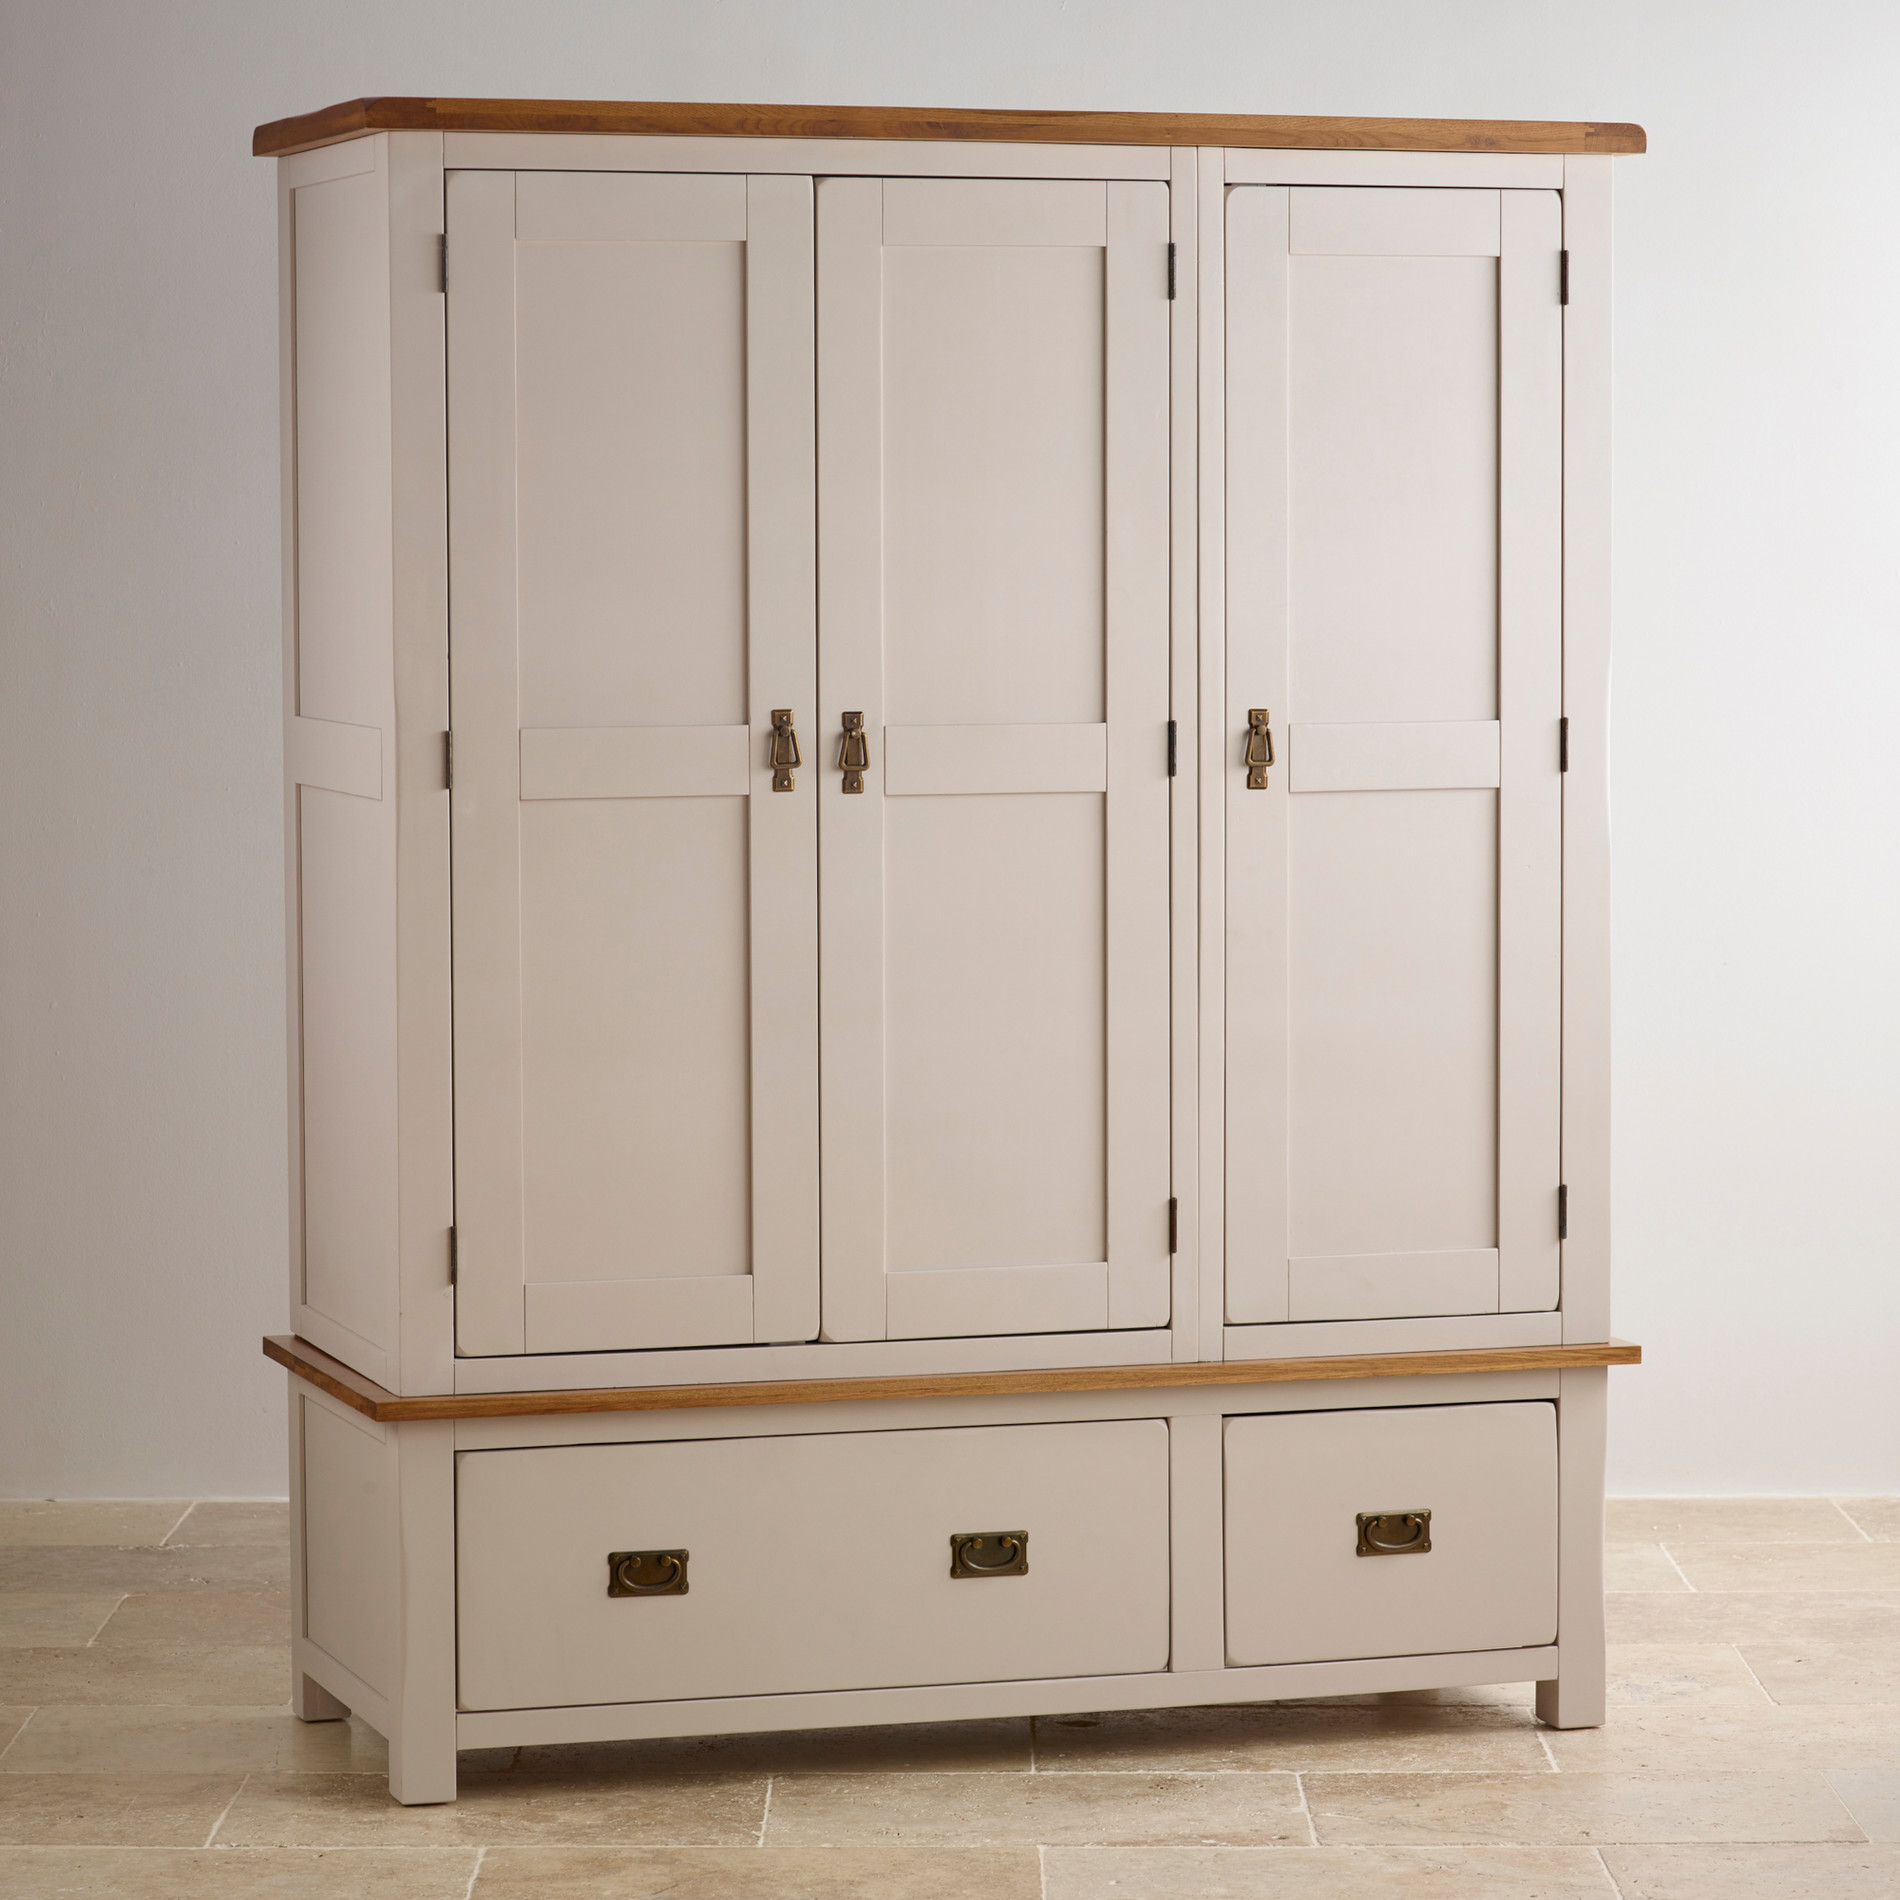 oak furniture land living room sets accent benches kemble solid & painted triple wardrobe